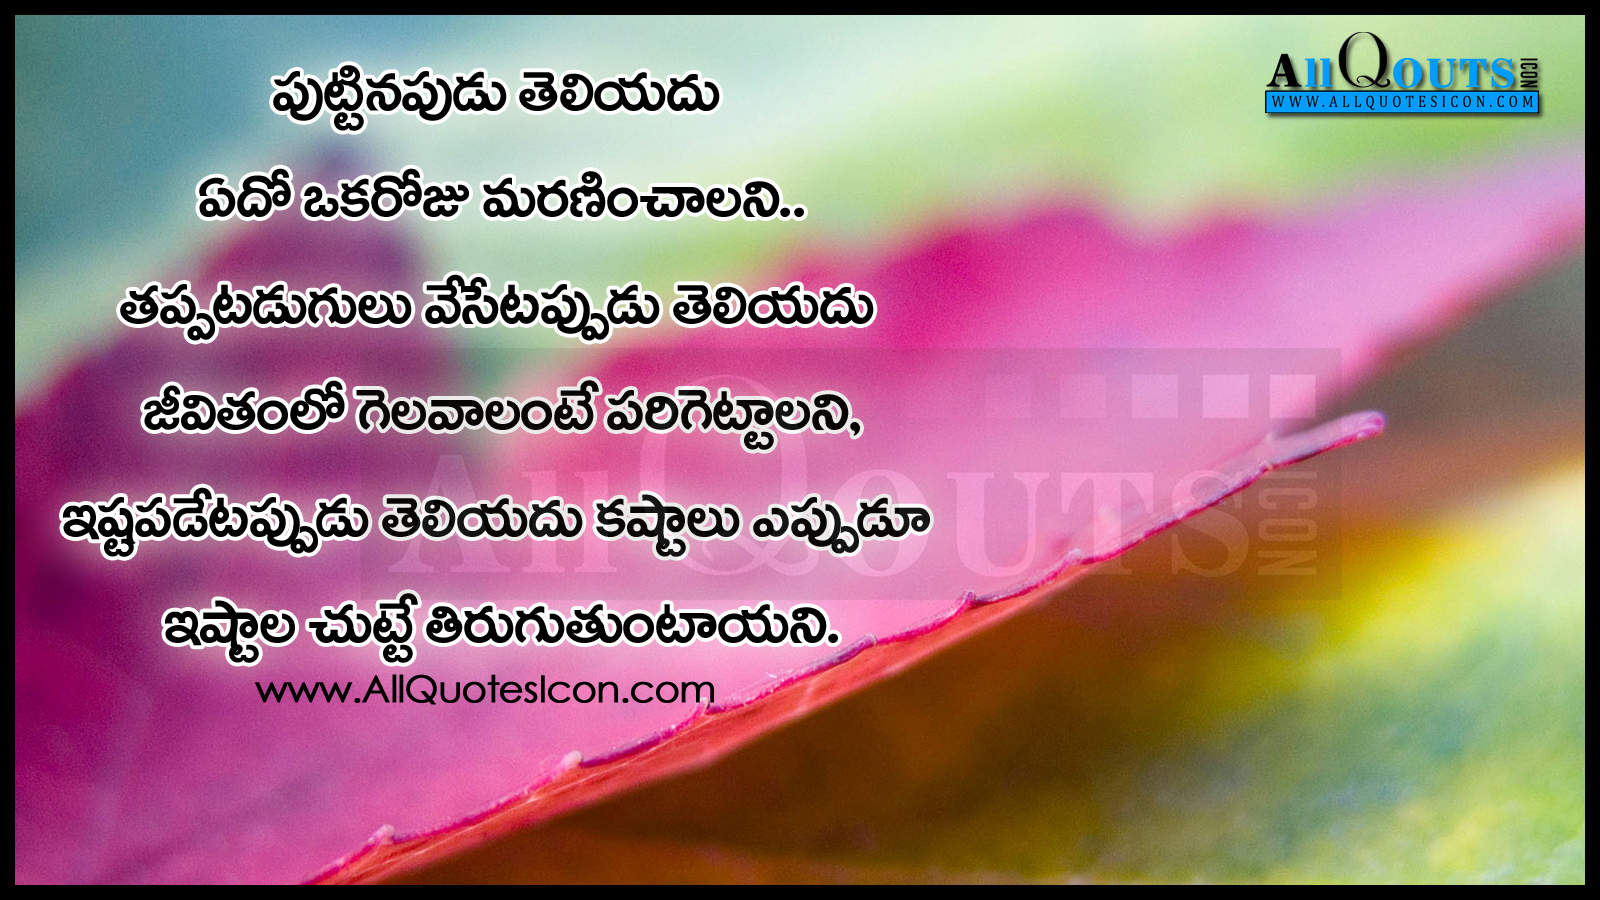 Telugu Awesome Life Quotations And Life Messages Www Allquotesicon